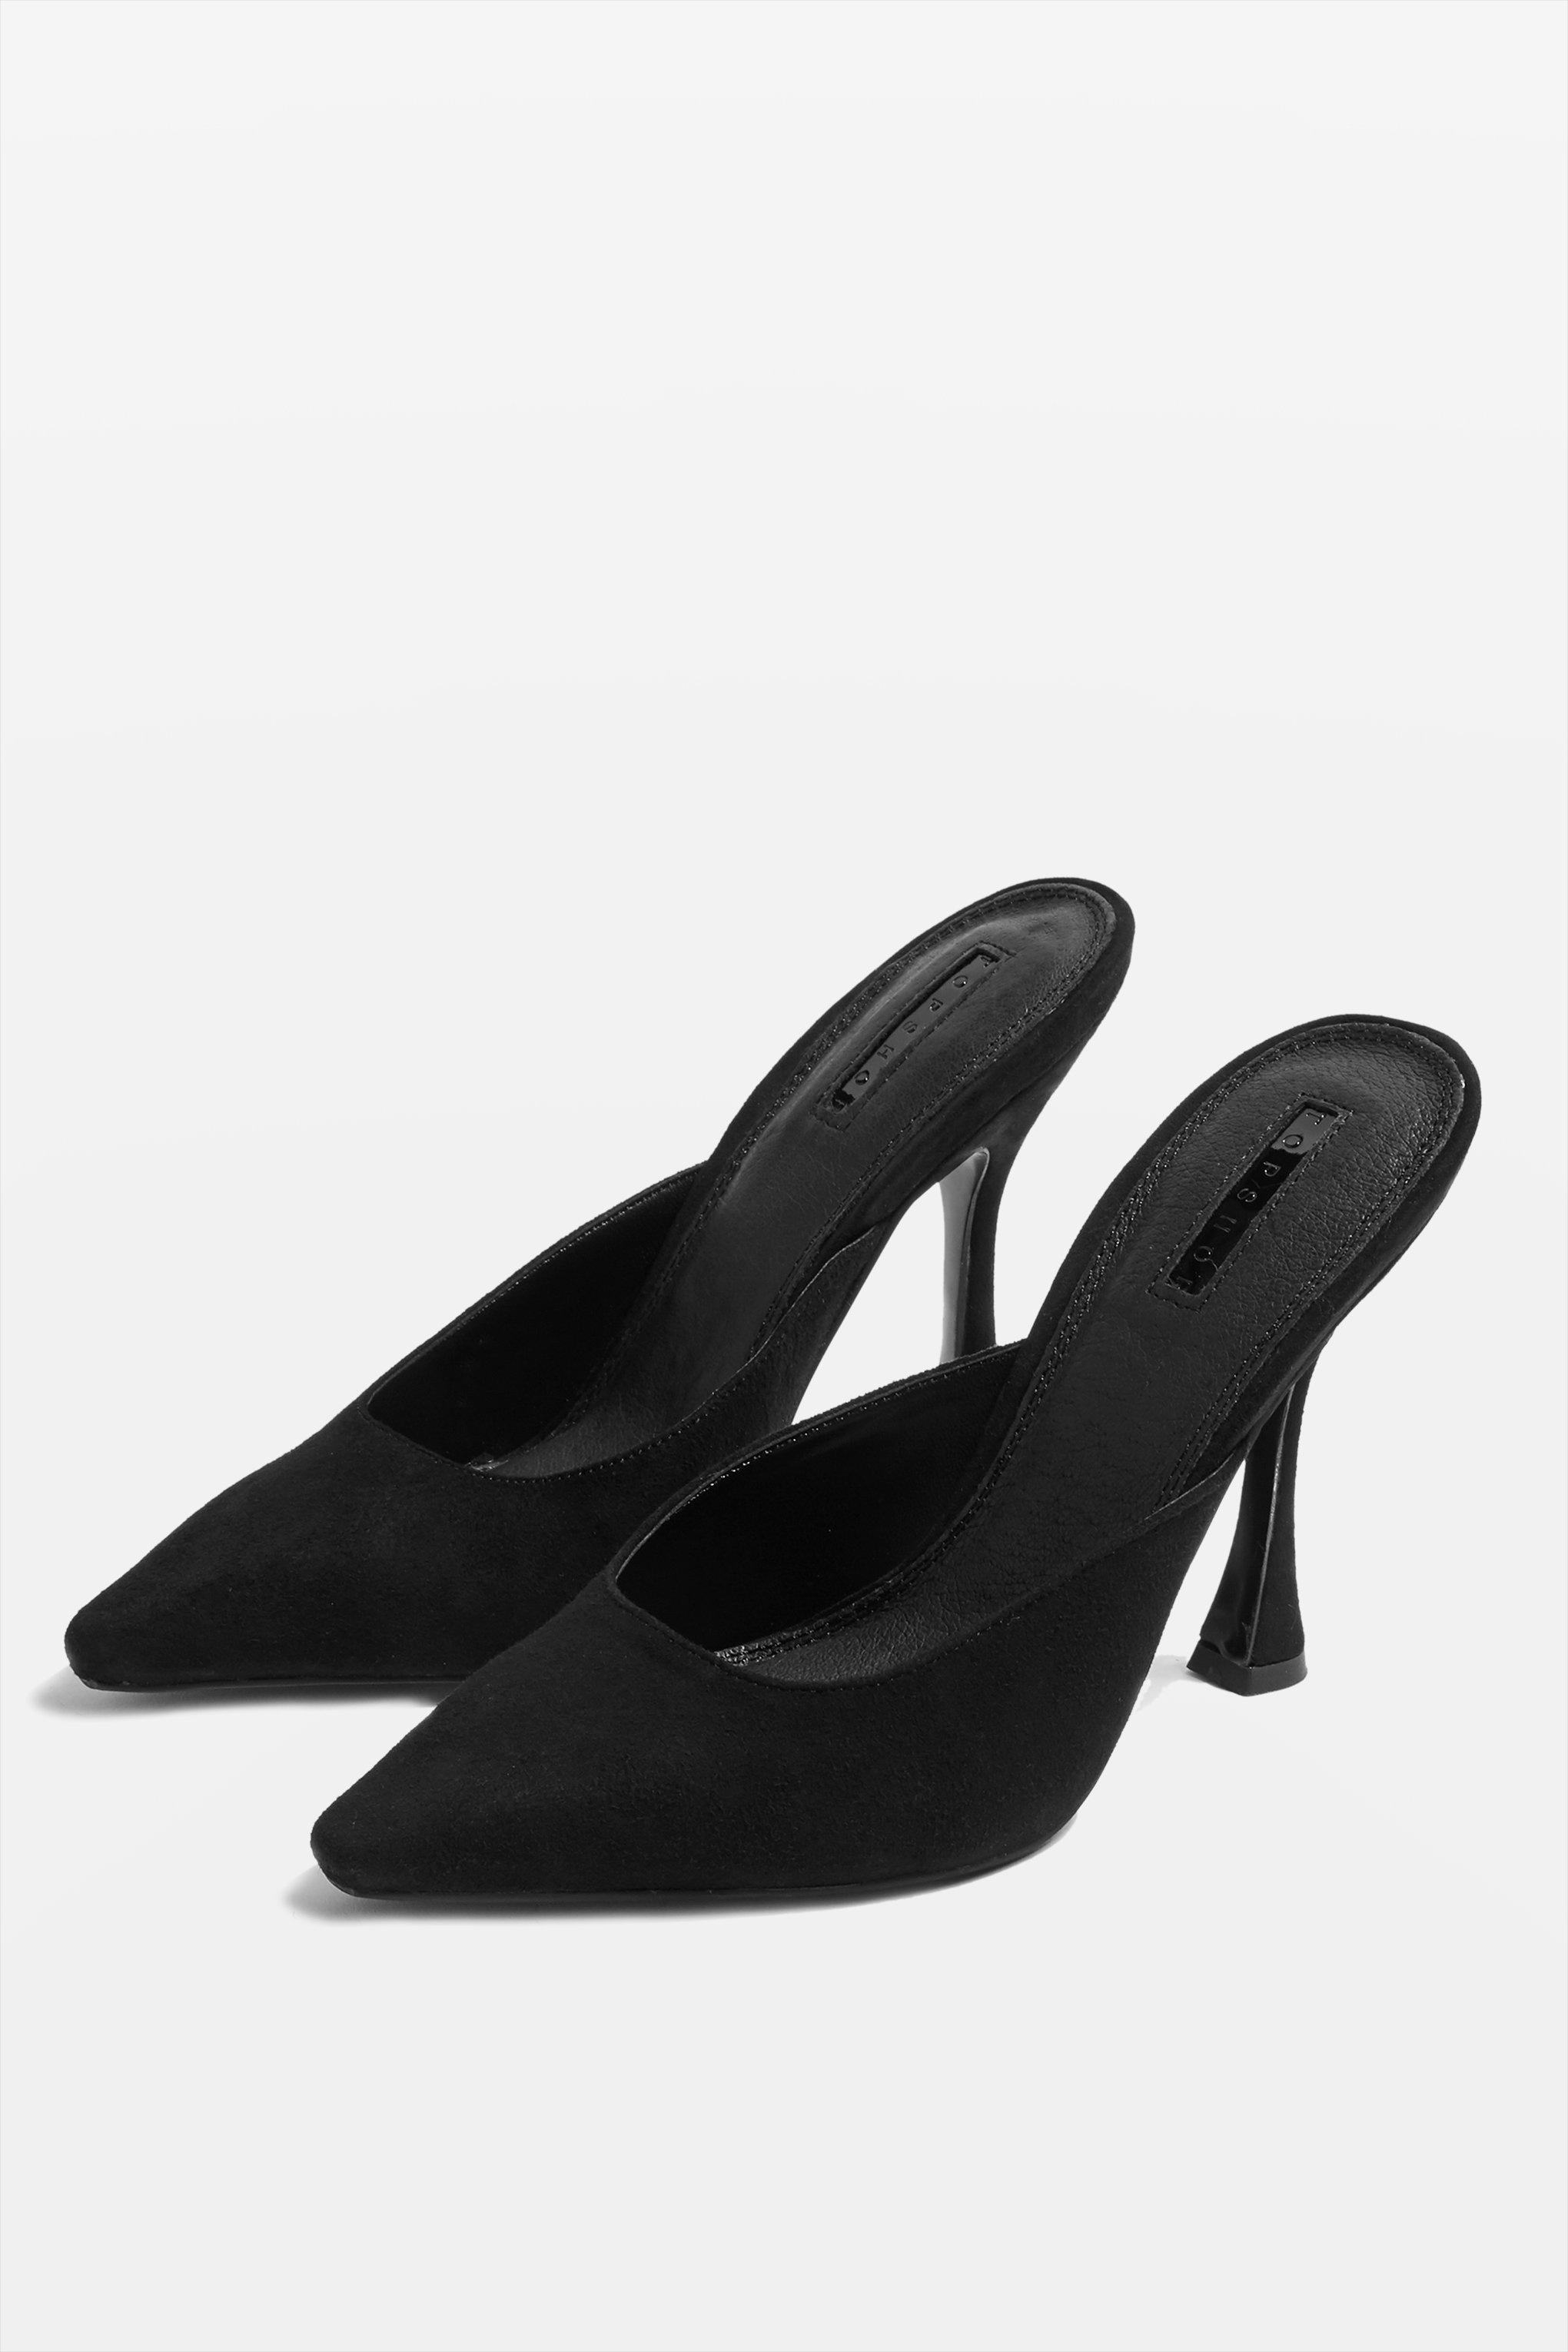 18b281db678 Lyst - Topshop Gloss Pointed Mules in Black